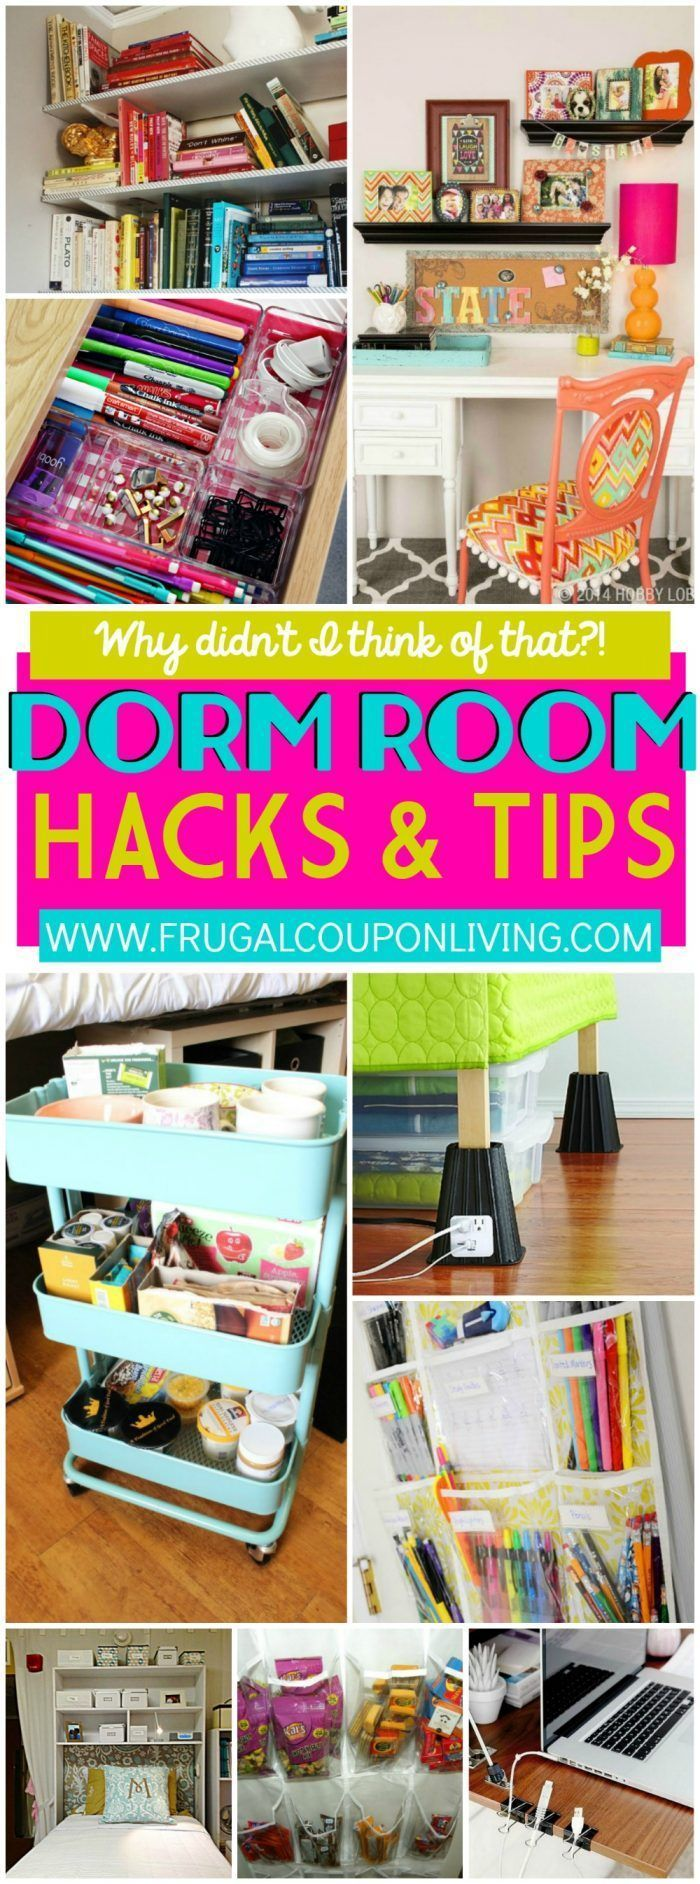 dorm room hacks and tips